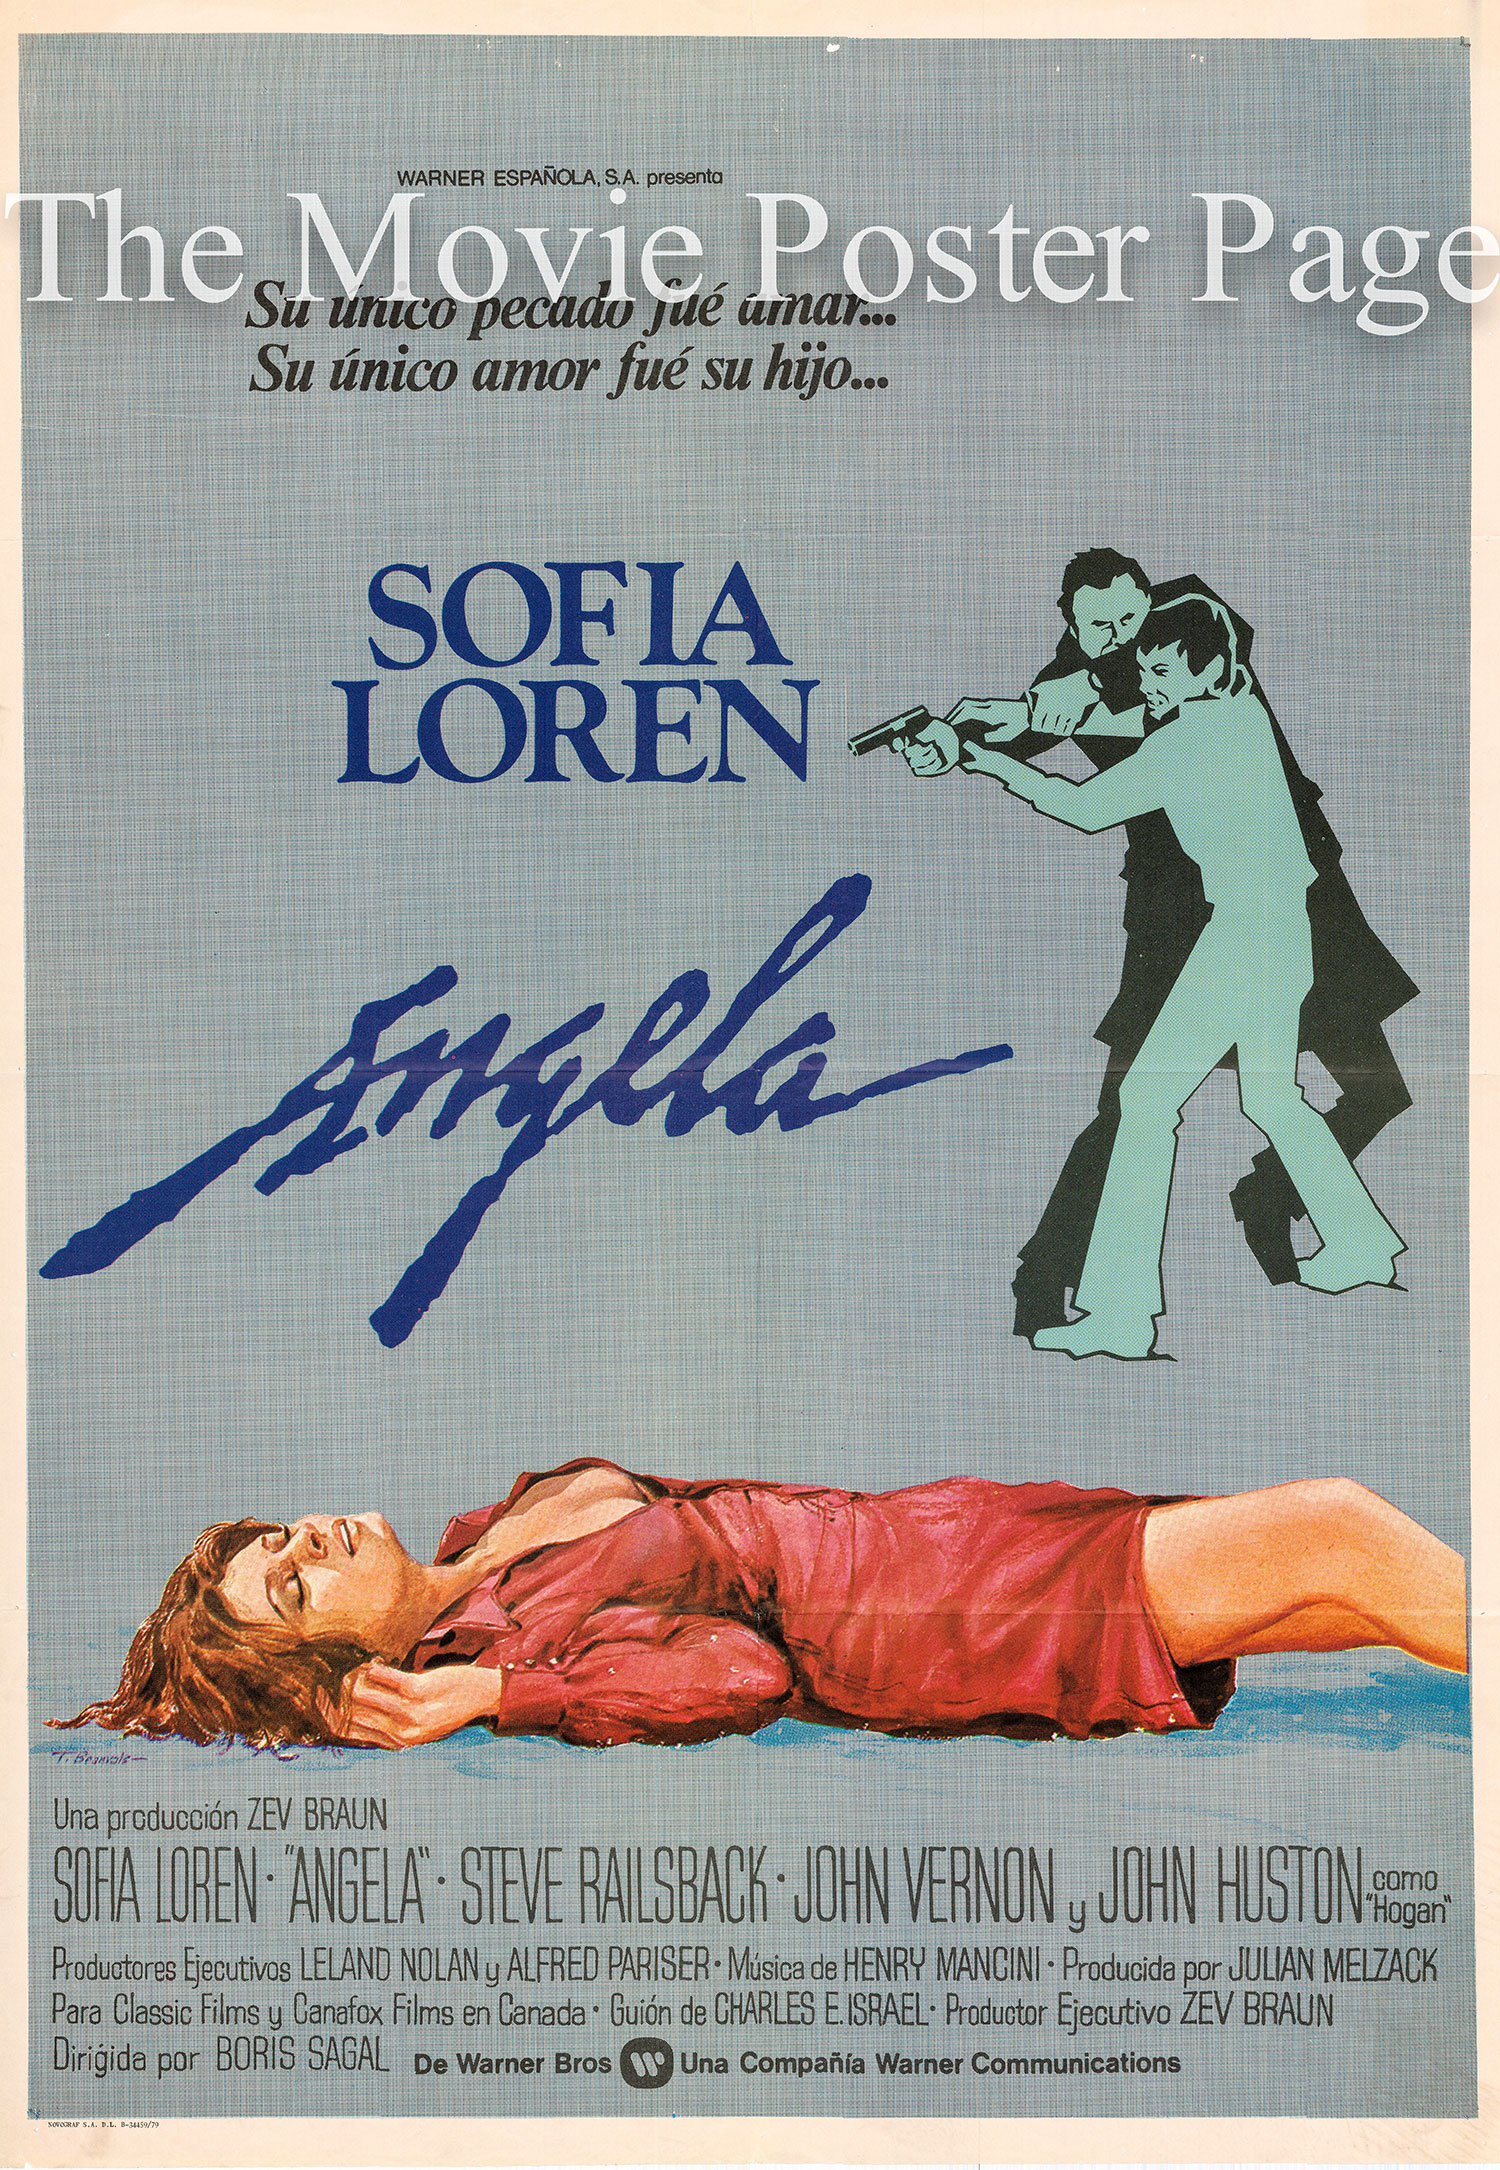 Pictured is a Spanish promotional poster to promote the 1978 Boris Sagal film Angela starring Sophia Loren.